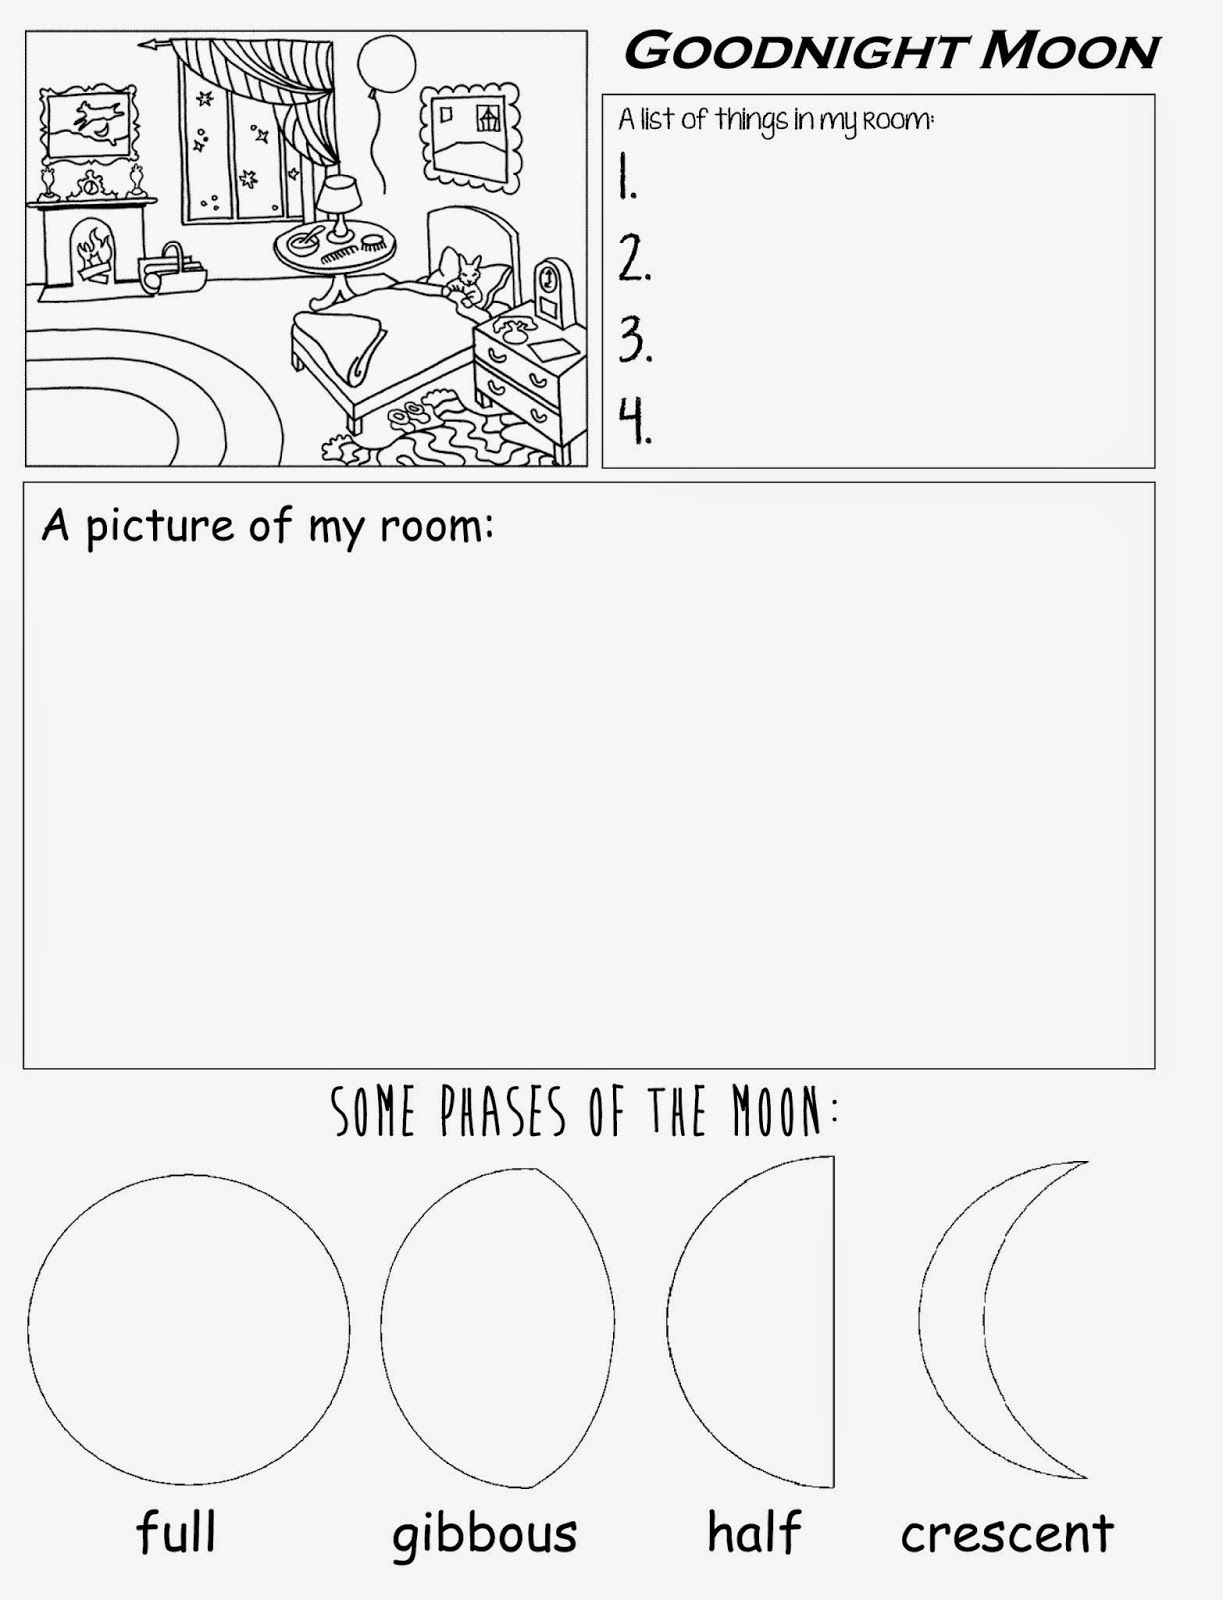 Good Night Moon Worksheet